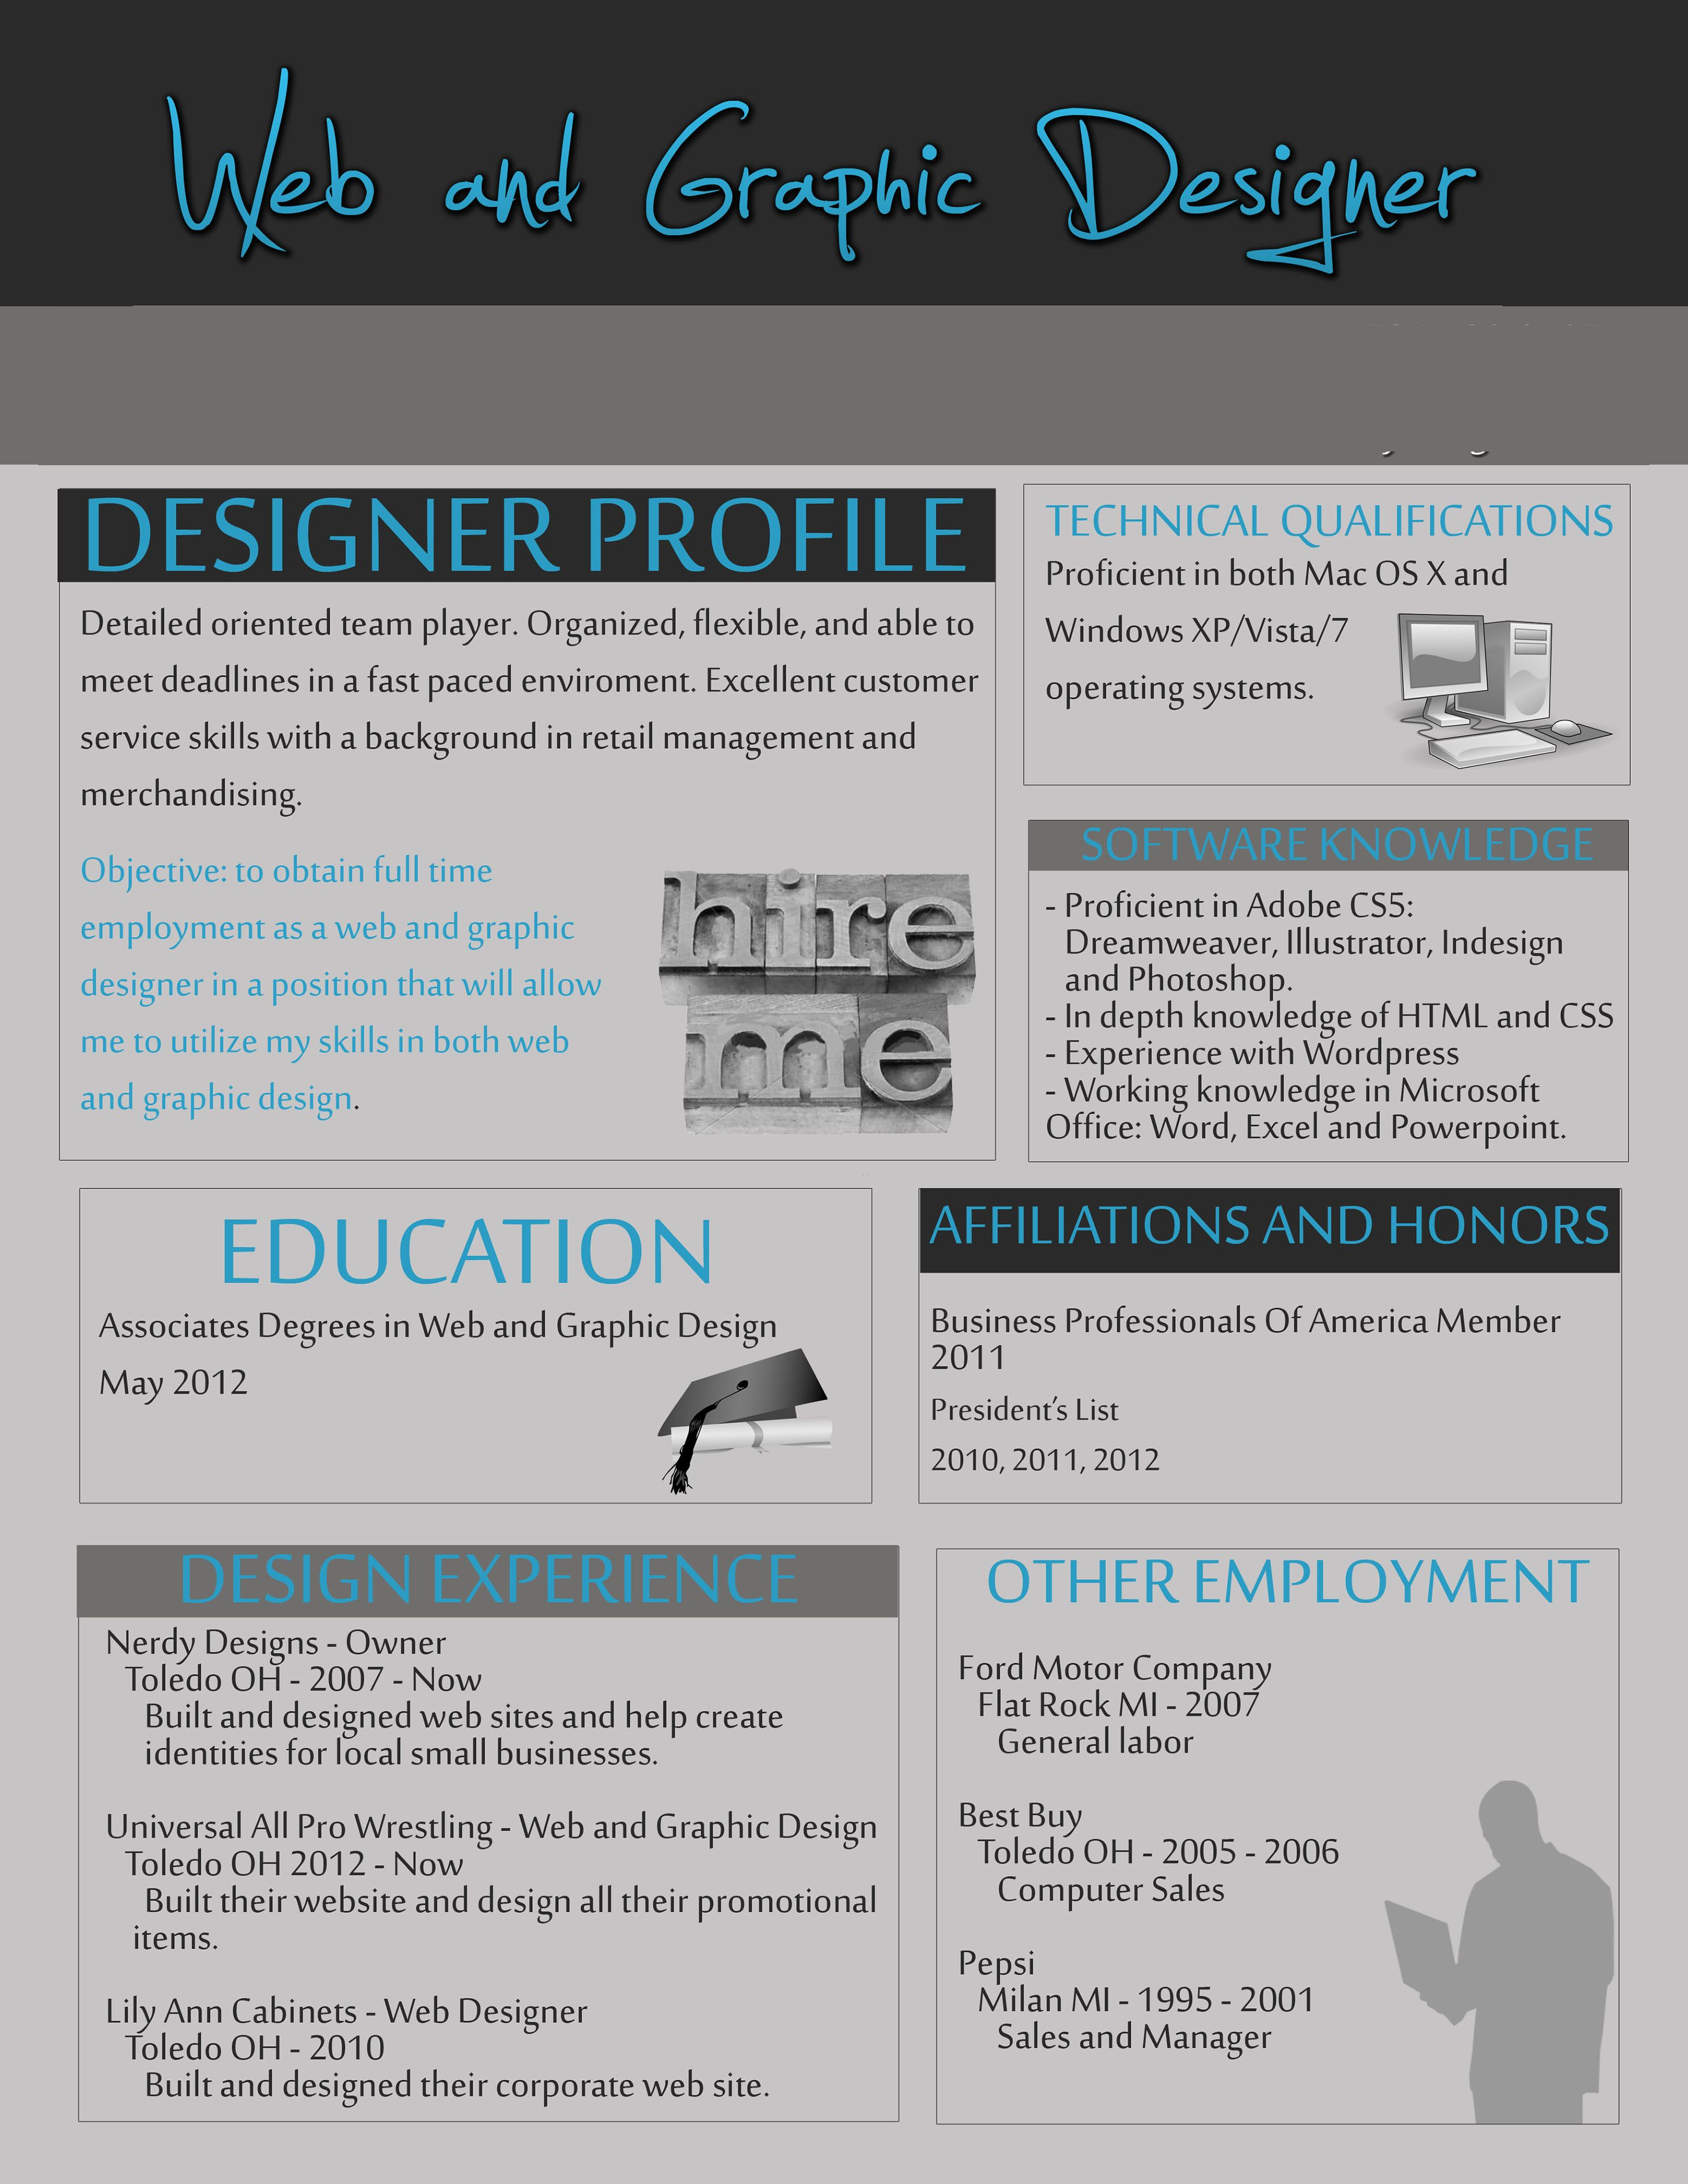 Graphic Infographic Graphic Designer Resume Http Www Nerdydesigns Com Great Resume Layout Howe Resume Template Graphic Design Resume Cool Things To Buy